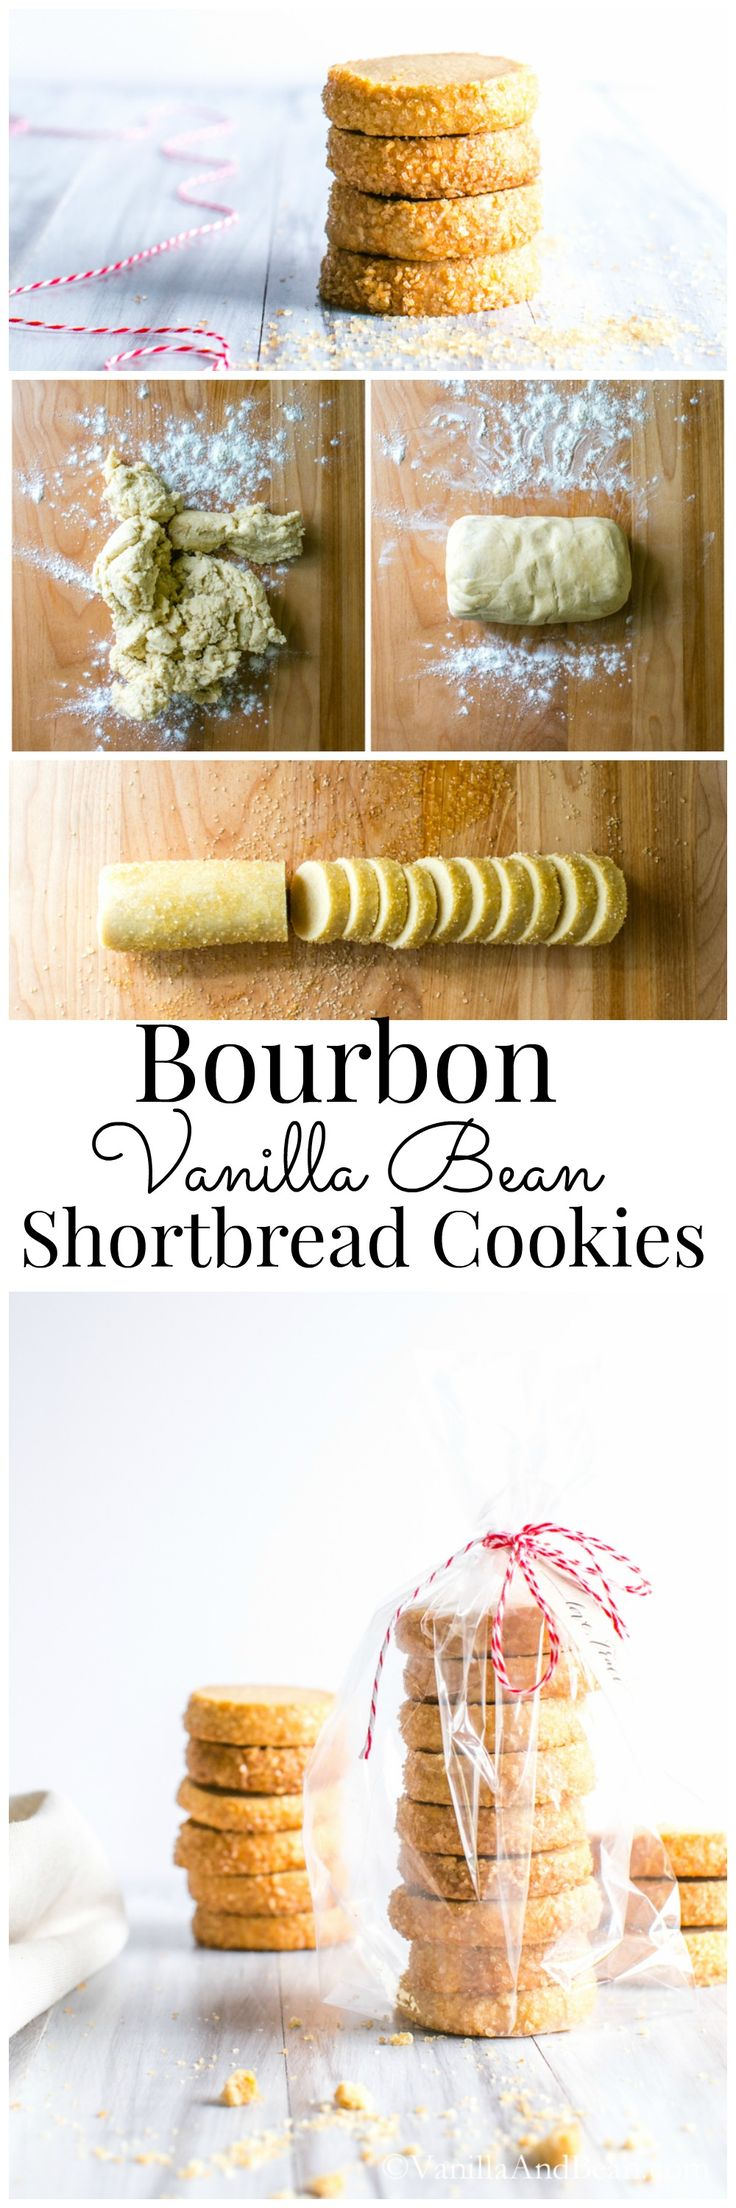 Bourbon and Vanilla shine in this buttery shortbread treat. Easy to make, and makes a fabulous gift!   Vanilla And Bean